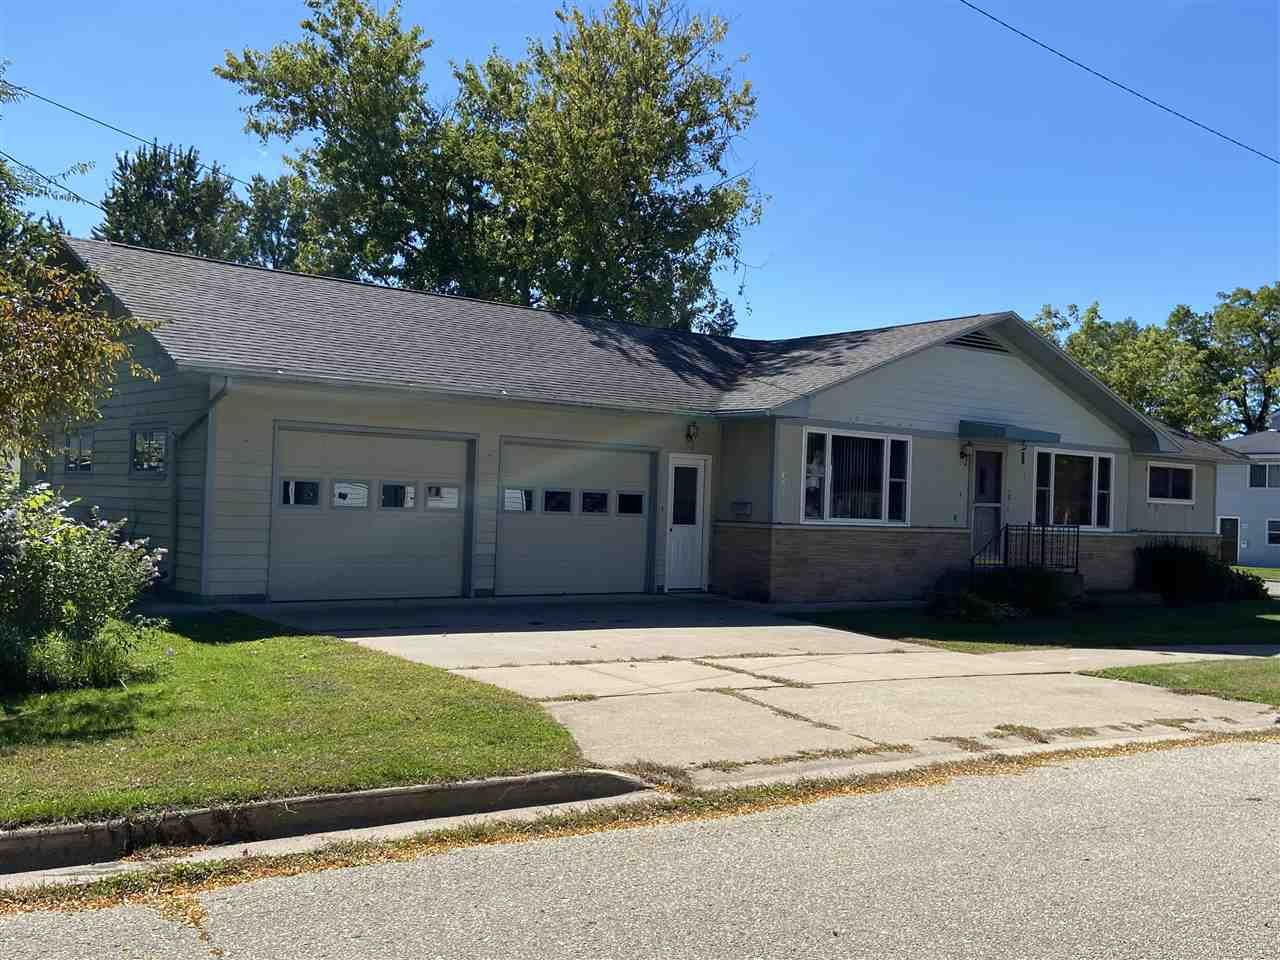 320 W Holton St, Tomah, WI 54660 - #: 1893596